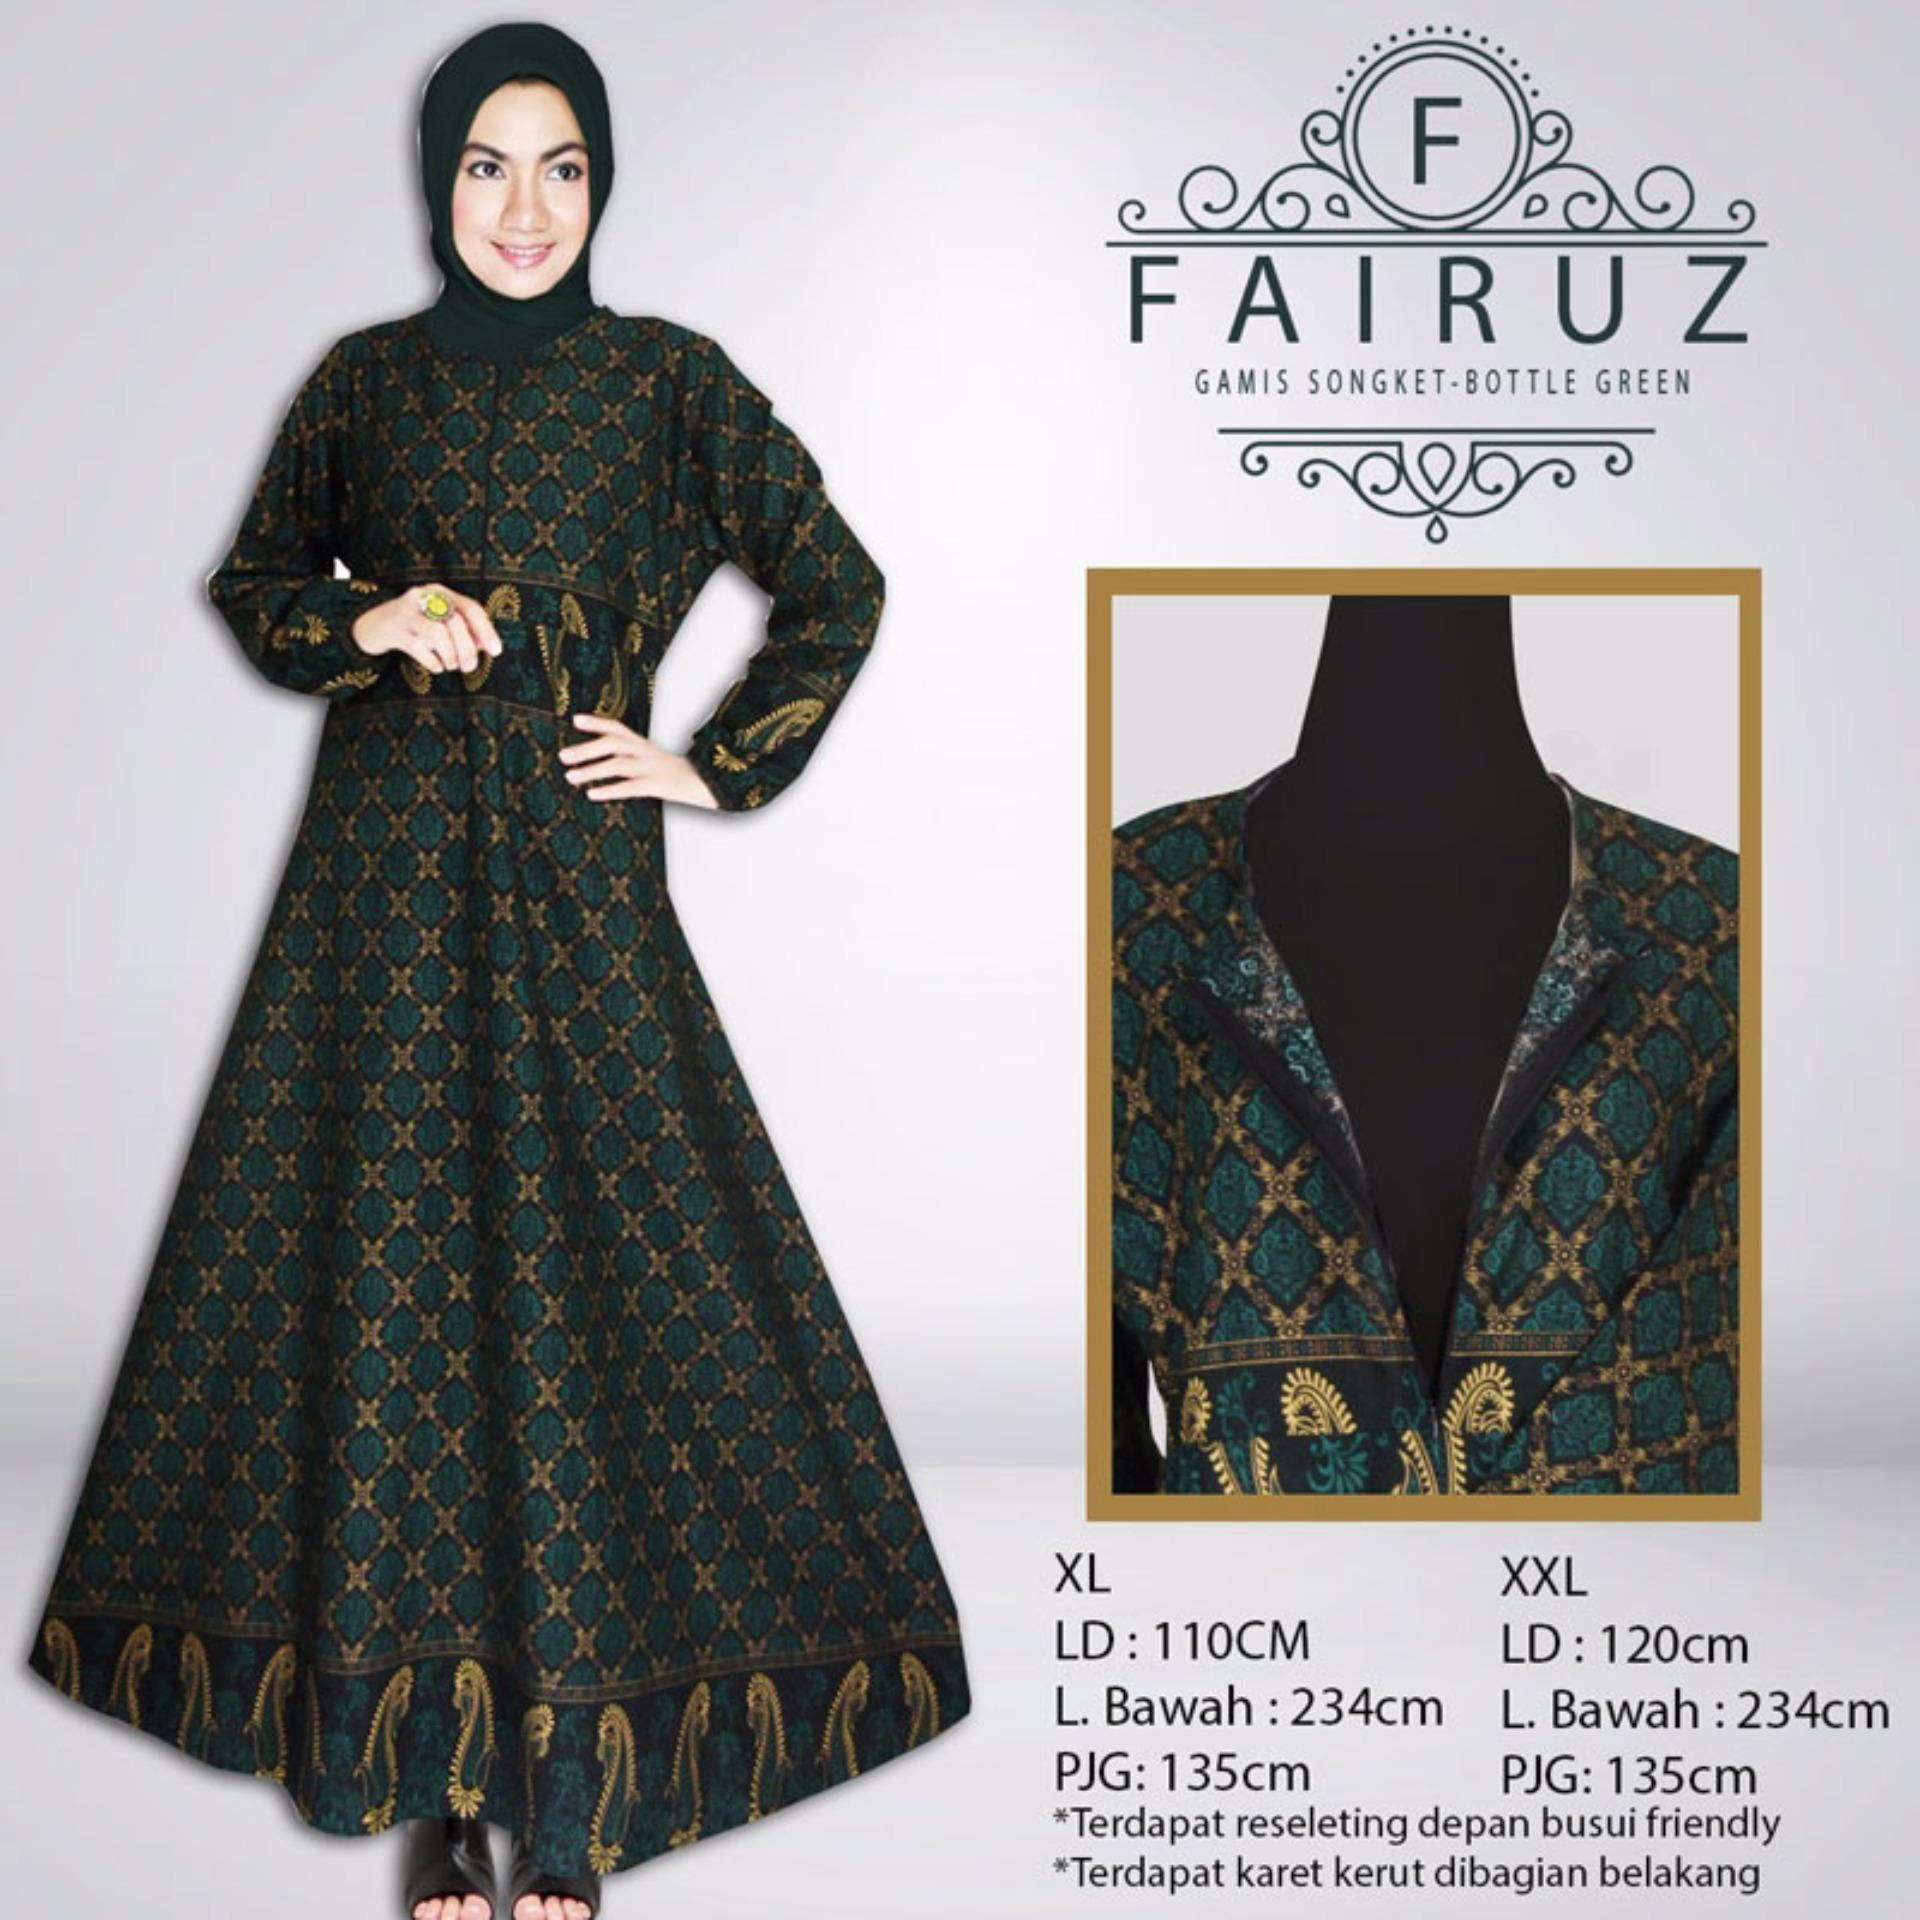 Gamis Songket Fairuz Bottle Green